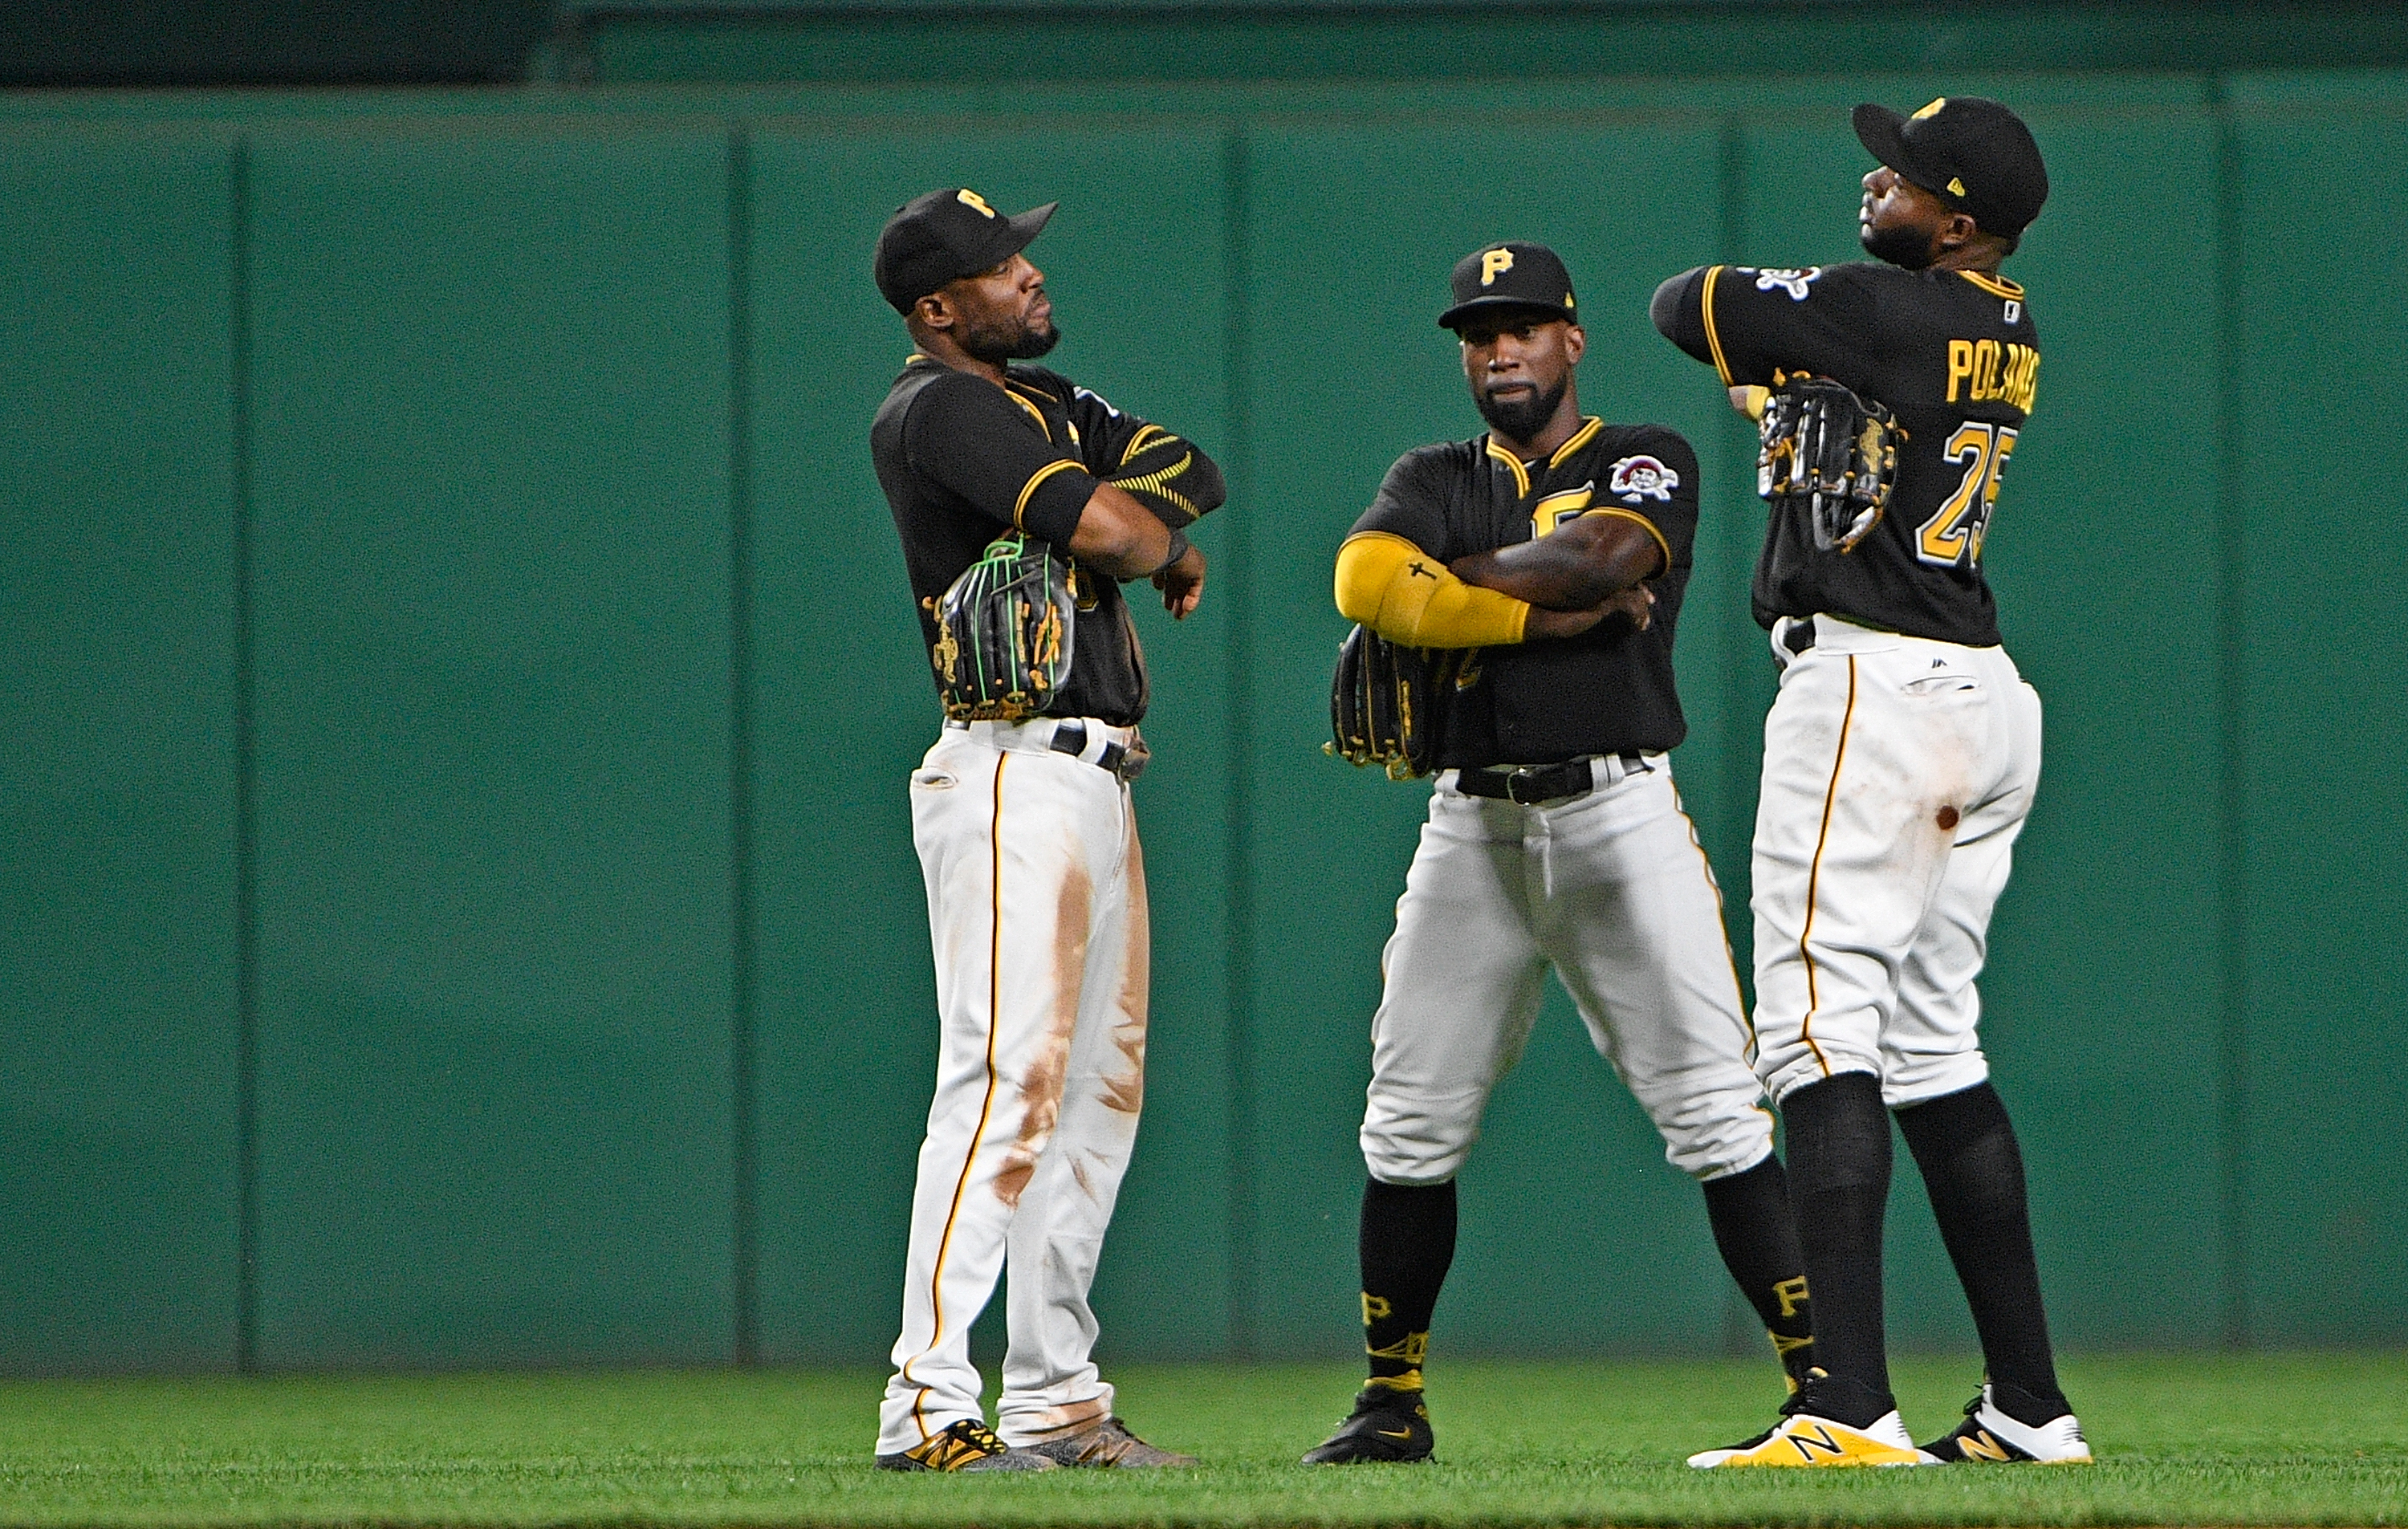 Pittsburgh Pirates: Pittsburgh Pirates: 2017 Season Review And Offseason Preview